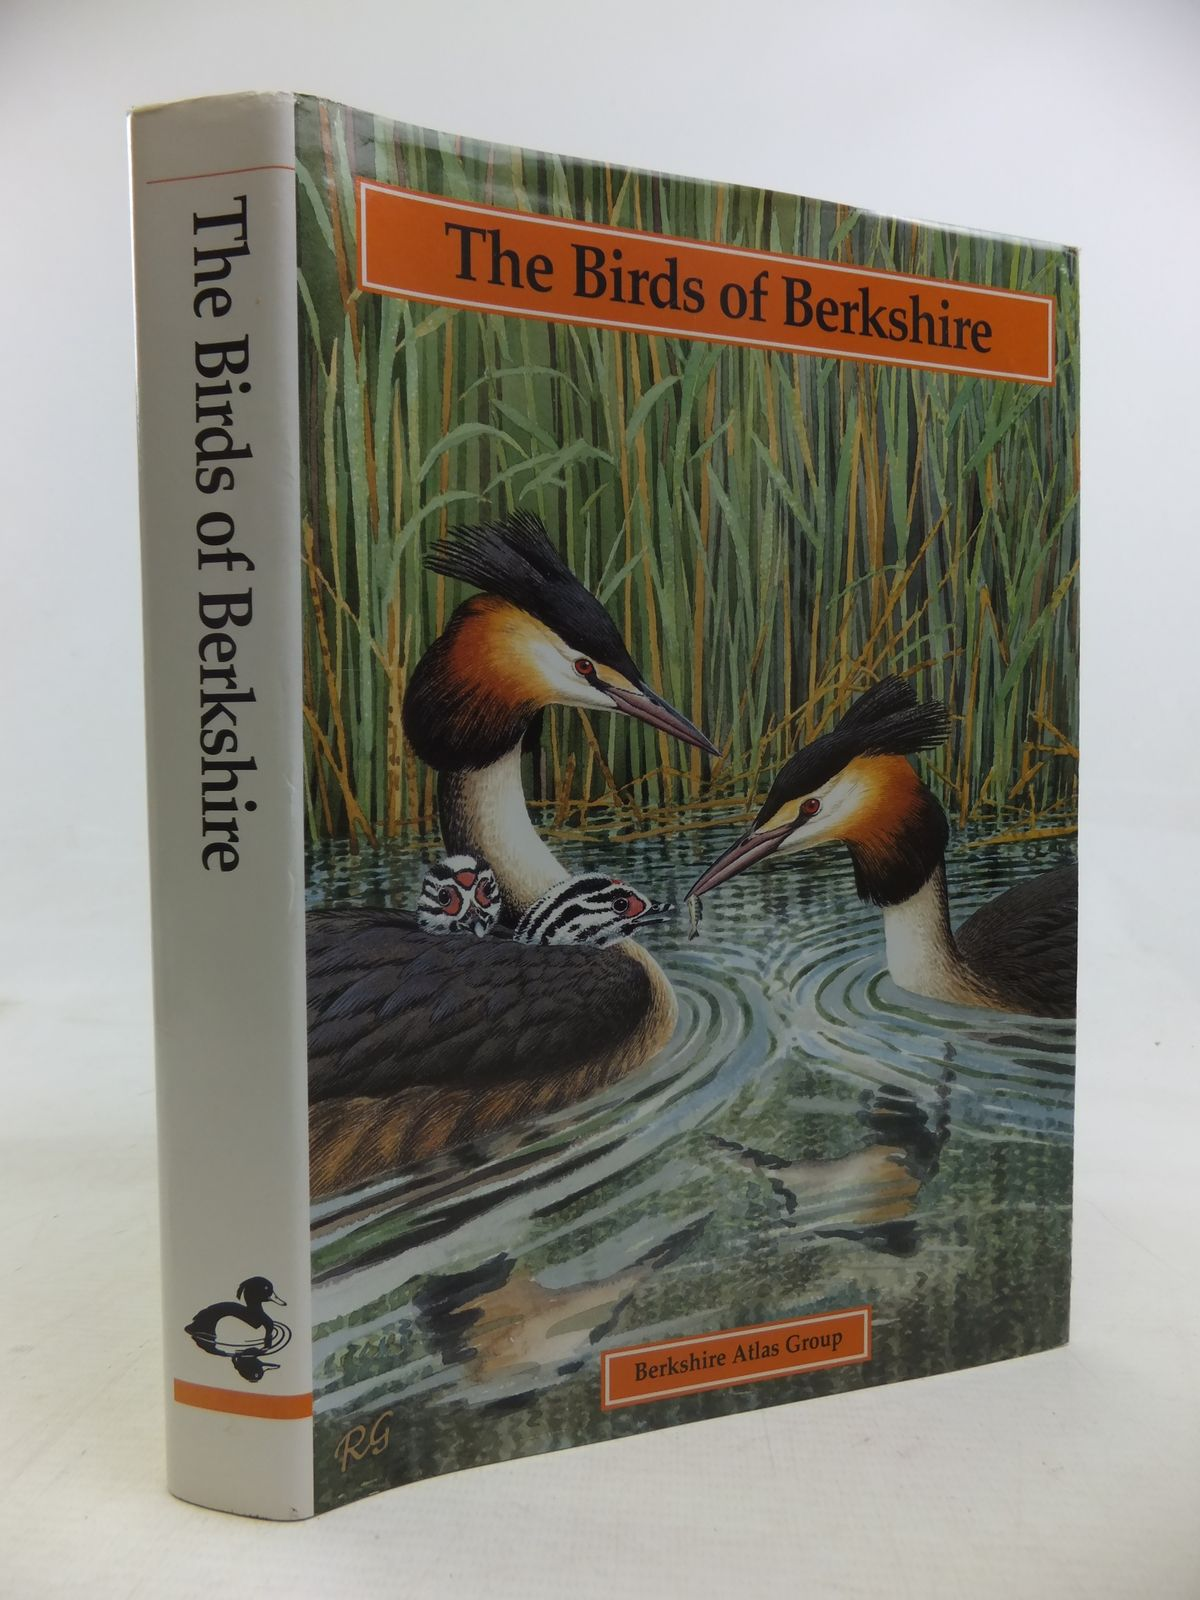 Photo of THE BIRDS OF BERKSHIRE written by Standley, Peter<br />Bucknell, N.J.<br />Swash, Andy<br />Collins, Ian D. illustrated by Gillmor, Robert published by The Berkshire Atlas Group (STOCK CODE: 1810932)  for sale by Stella & Rose's Books